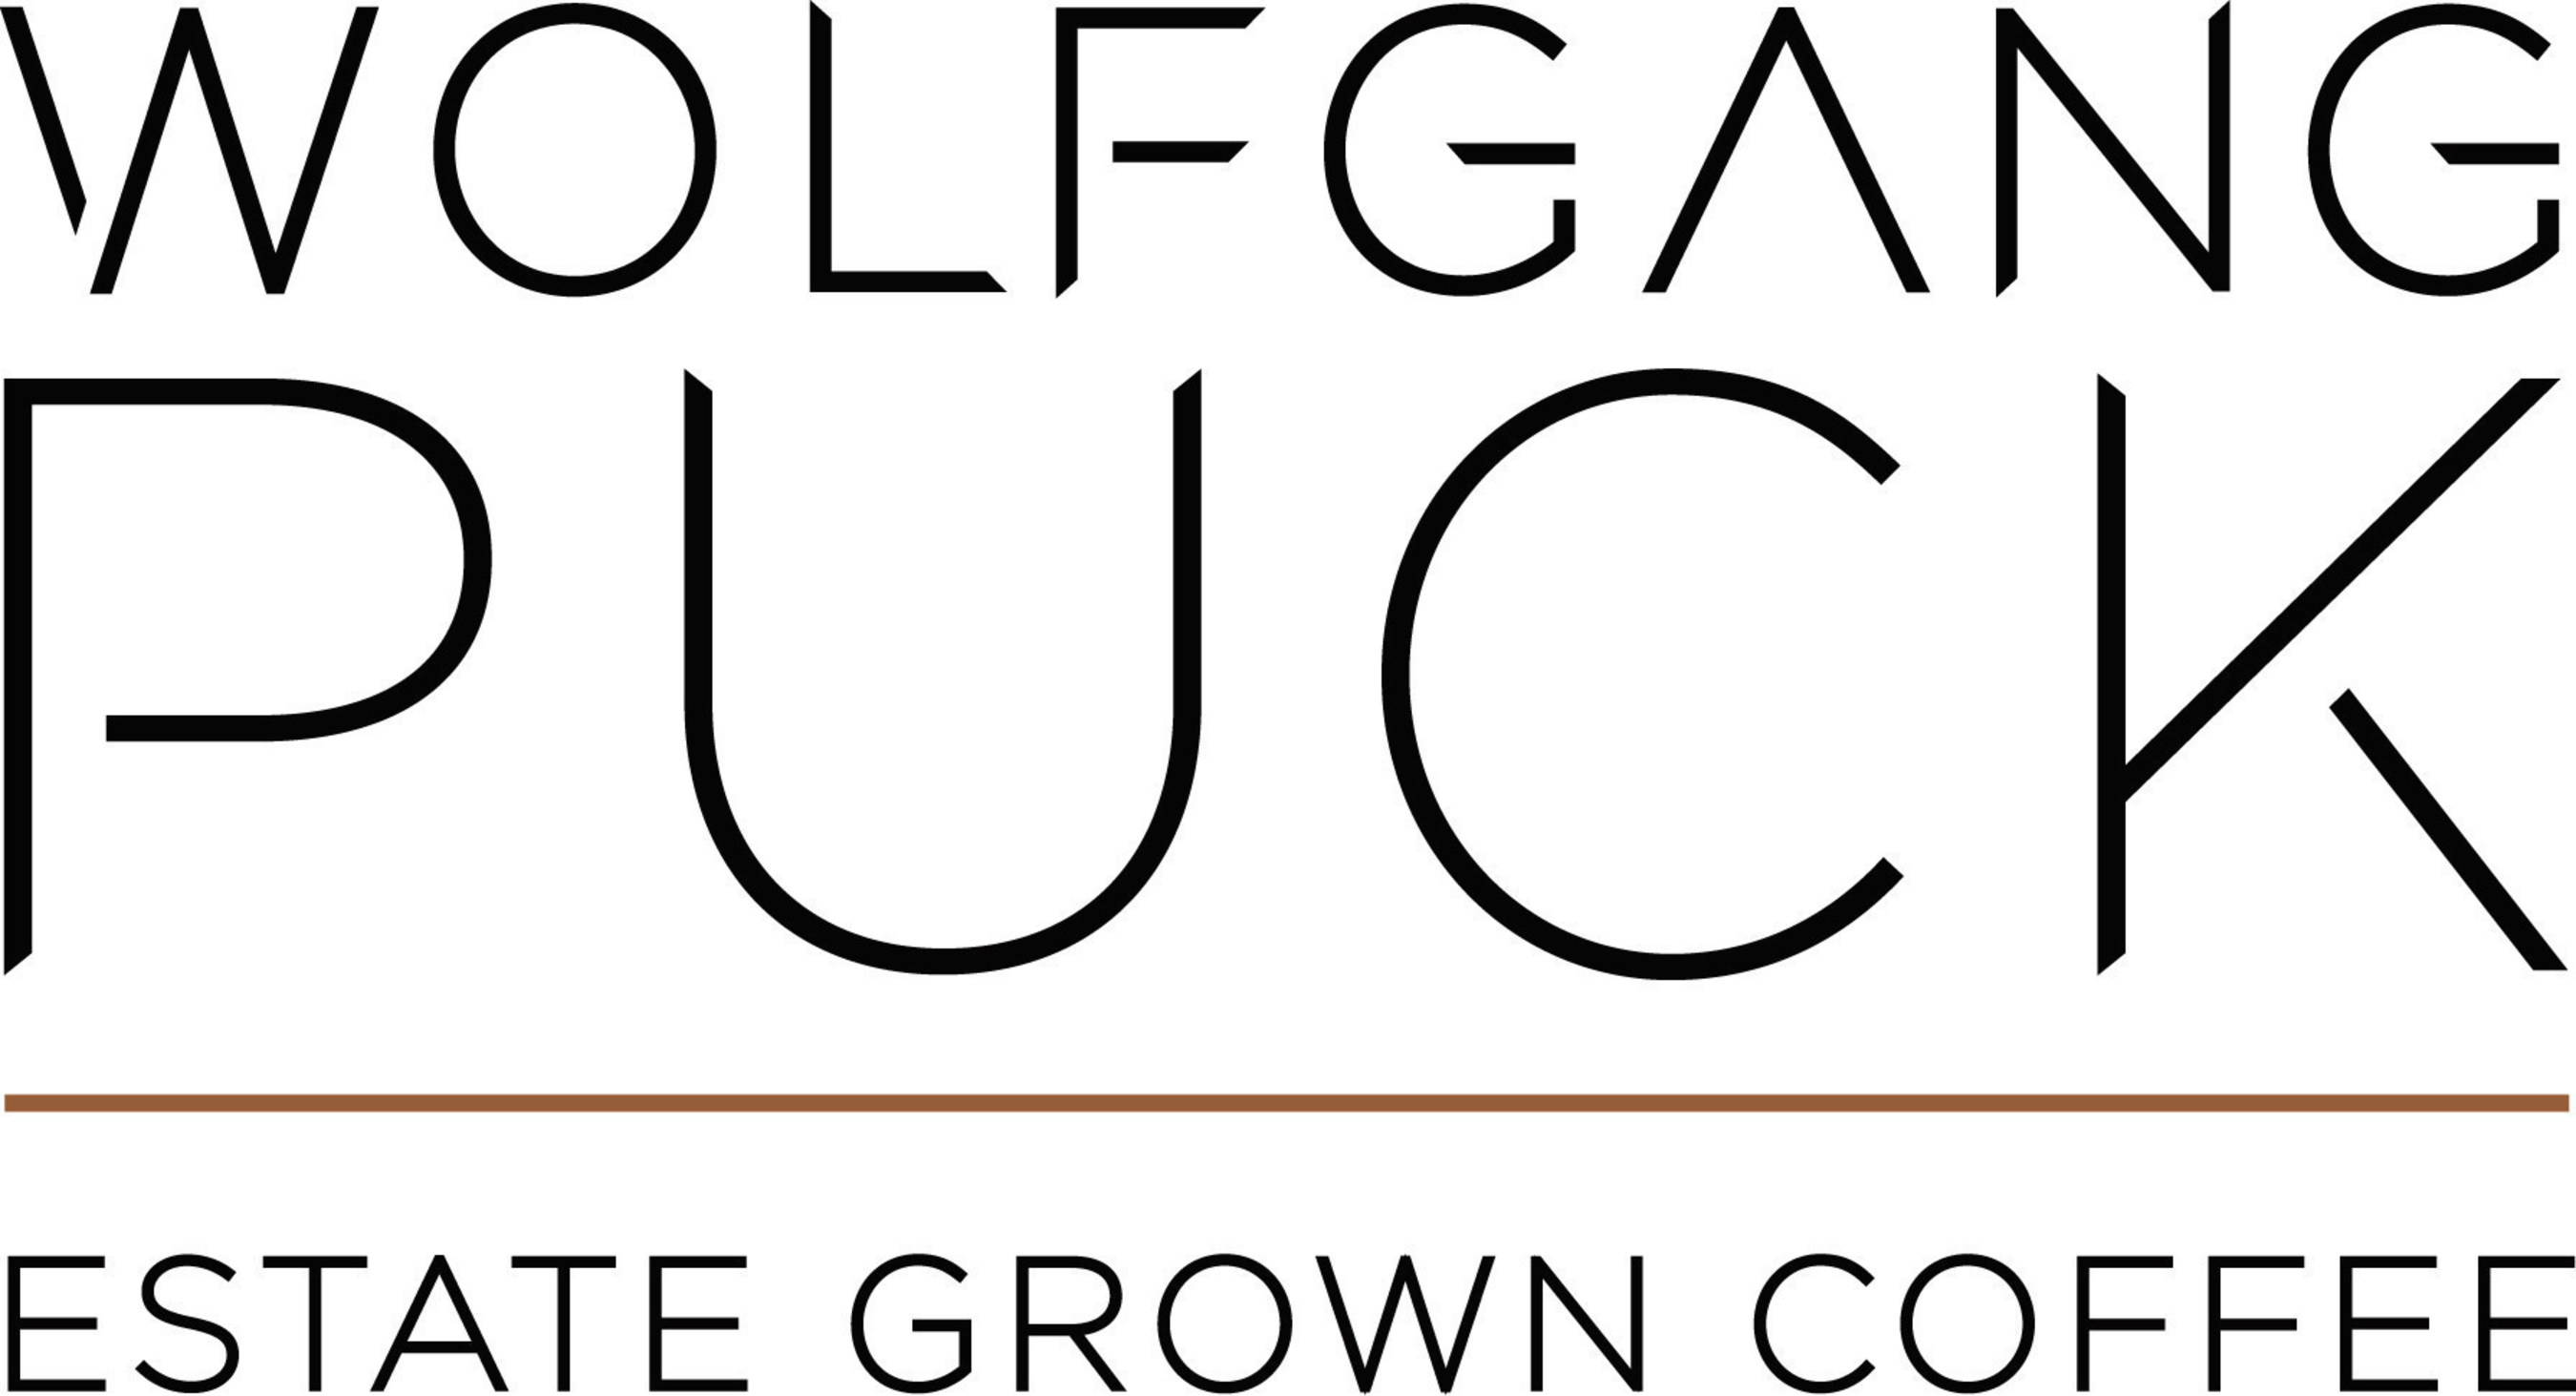 Wolfgang Puck Coffee is Creating a Healthier Environment! Wolfgang Puck will Transition to Sustainable EcoCup(TM) Single Serve Capsules - compatible with Keurig(R) Brewers